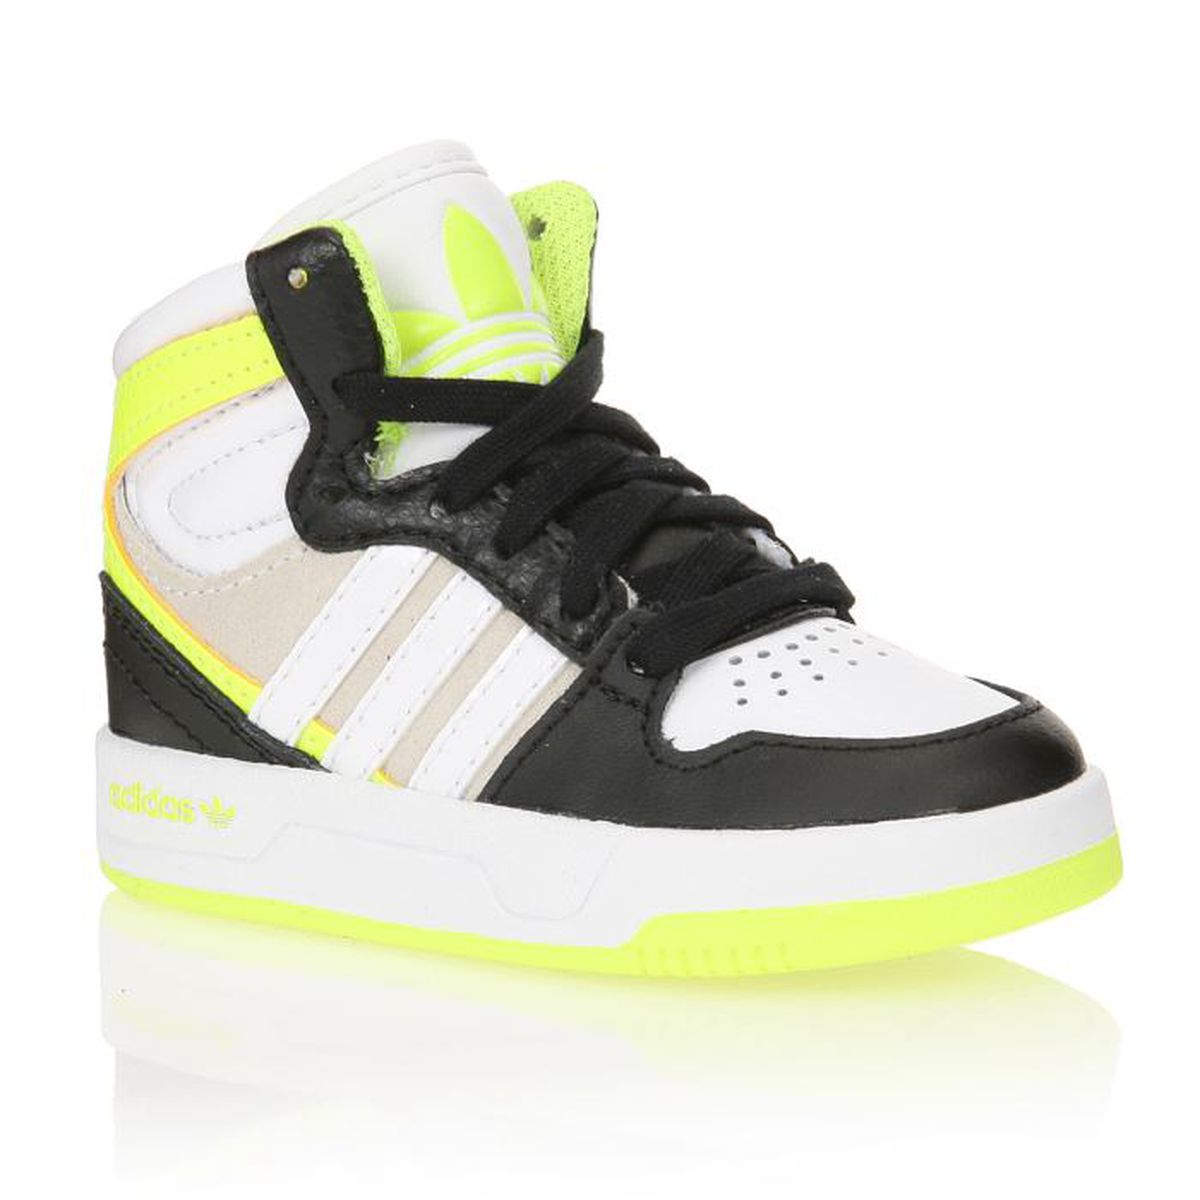 adidas baskets court attitude b b gar on noir blanc gris jaune fluo achat vente. Black Bedroom Furniture Sets. Home Design Ideas